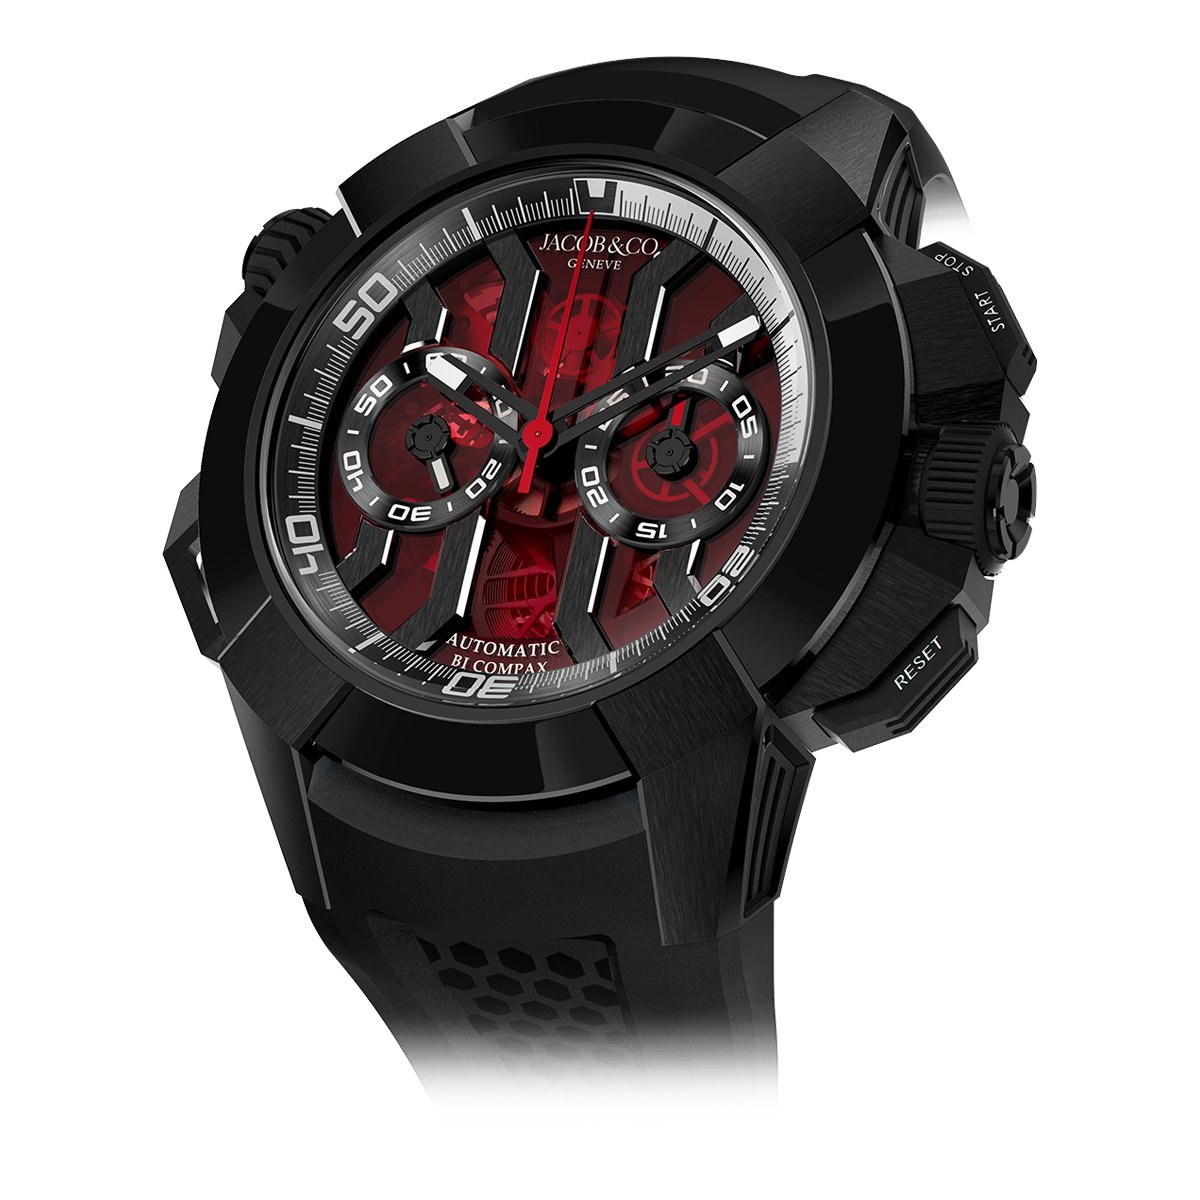 Jacob & Co. Epic X Chronograph Black DLC Red Dial - Watches & Crystals